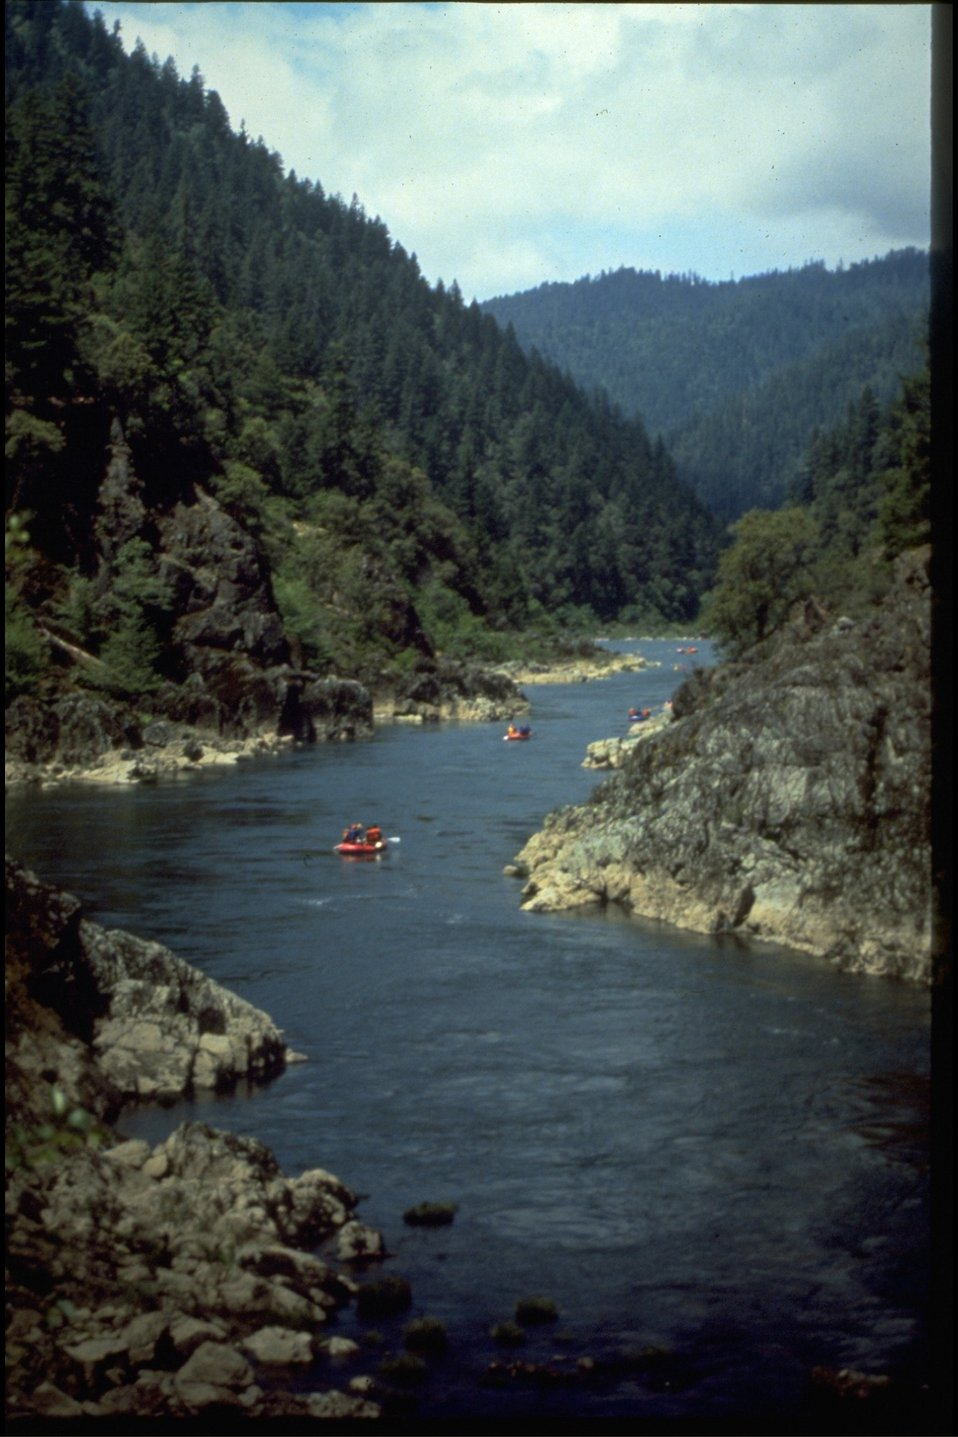 Rafting on wild section of the Rogue River.